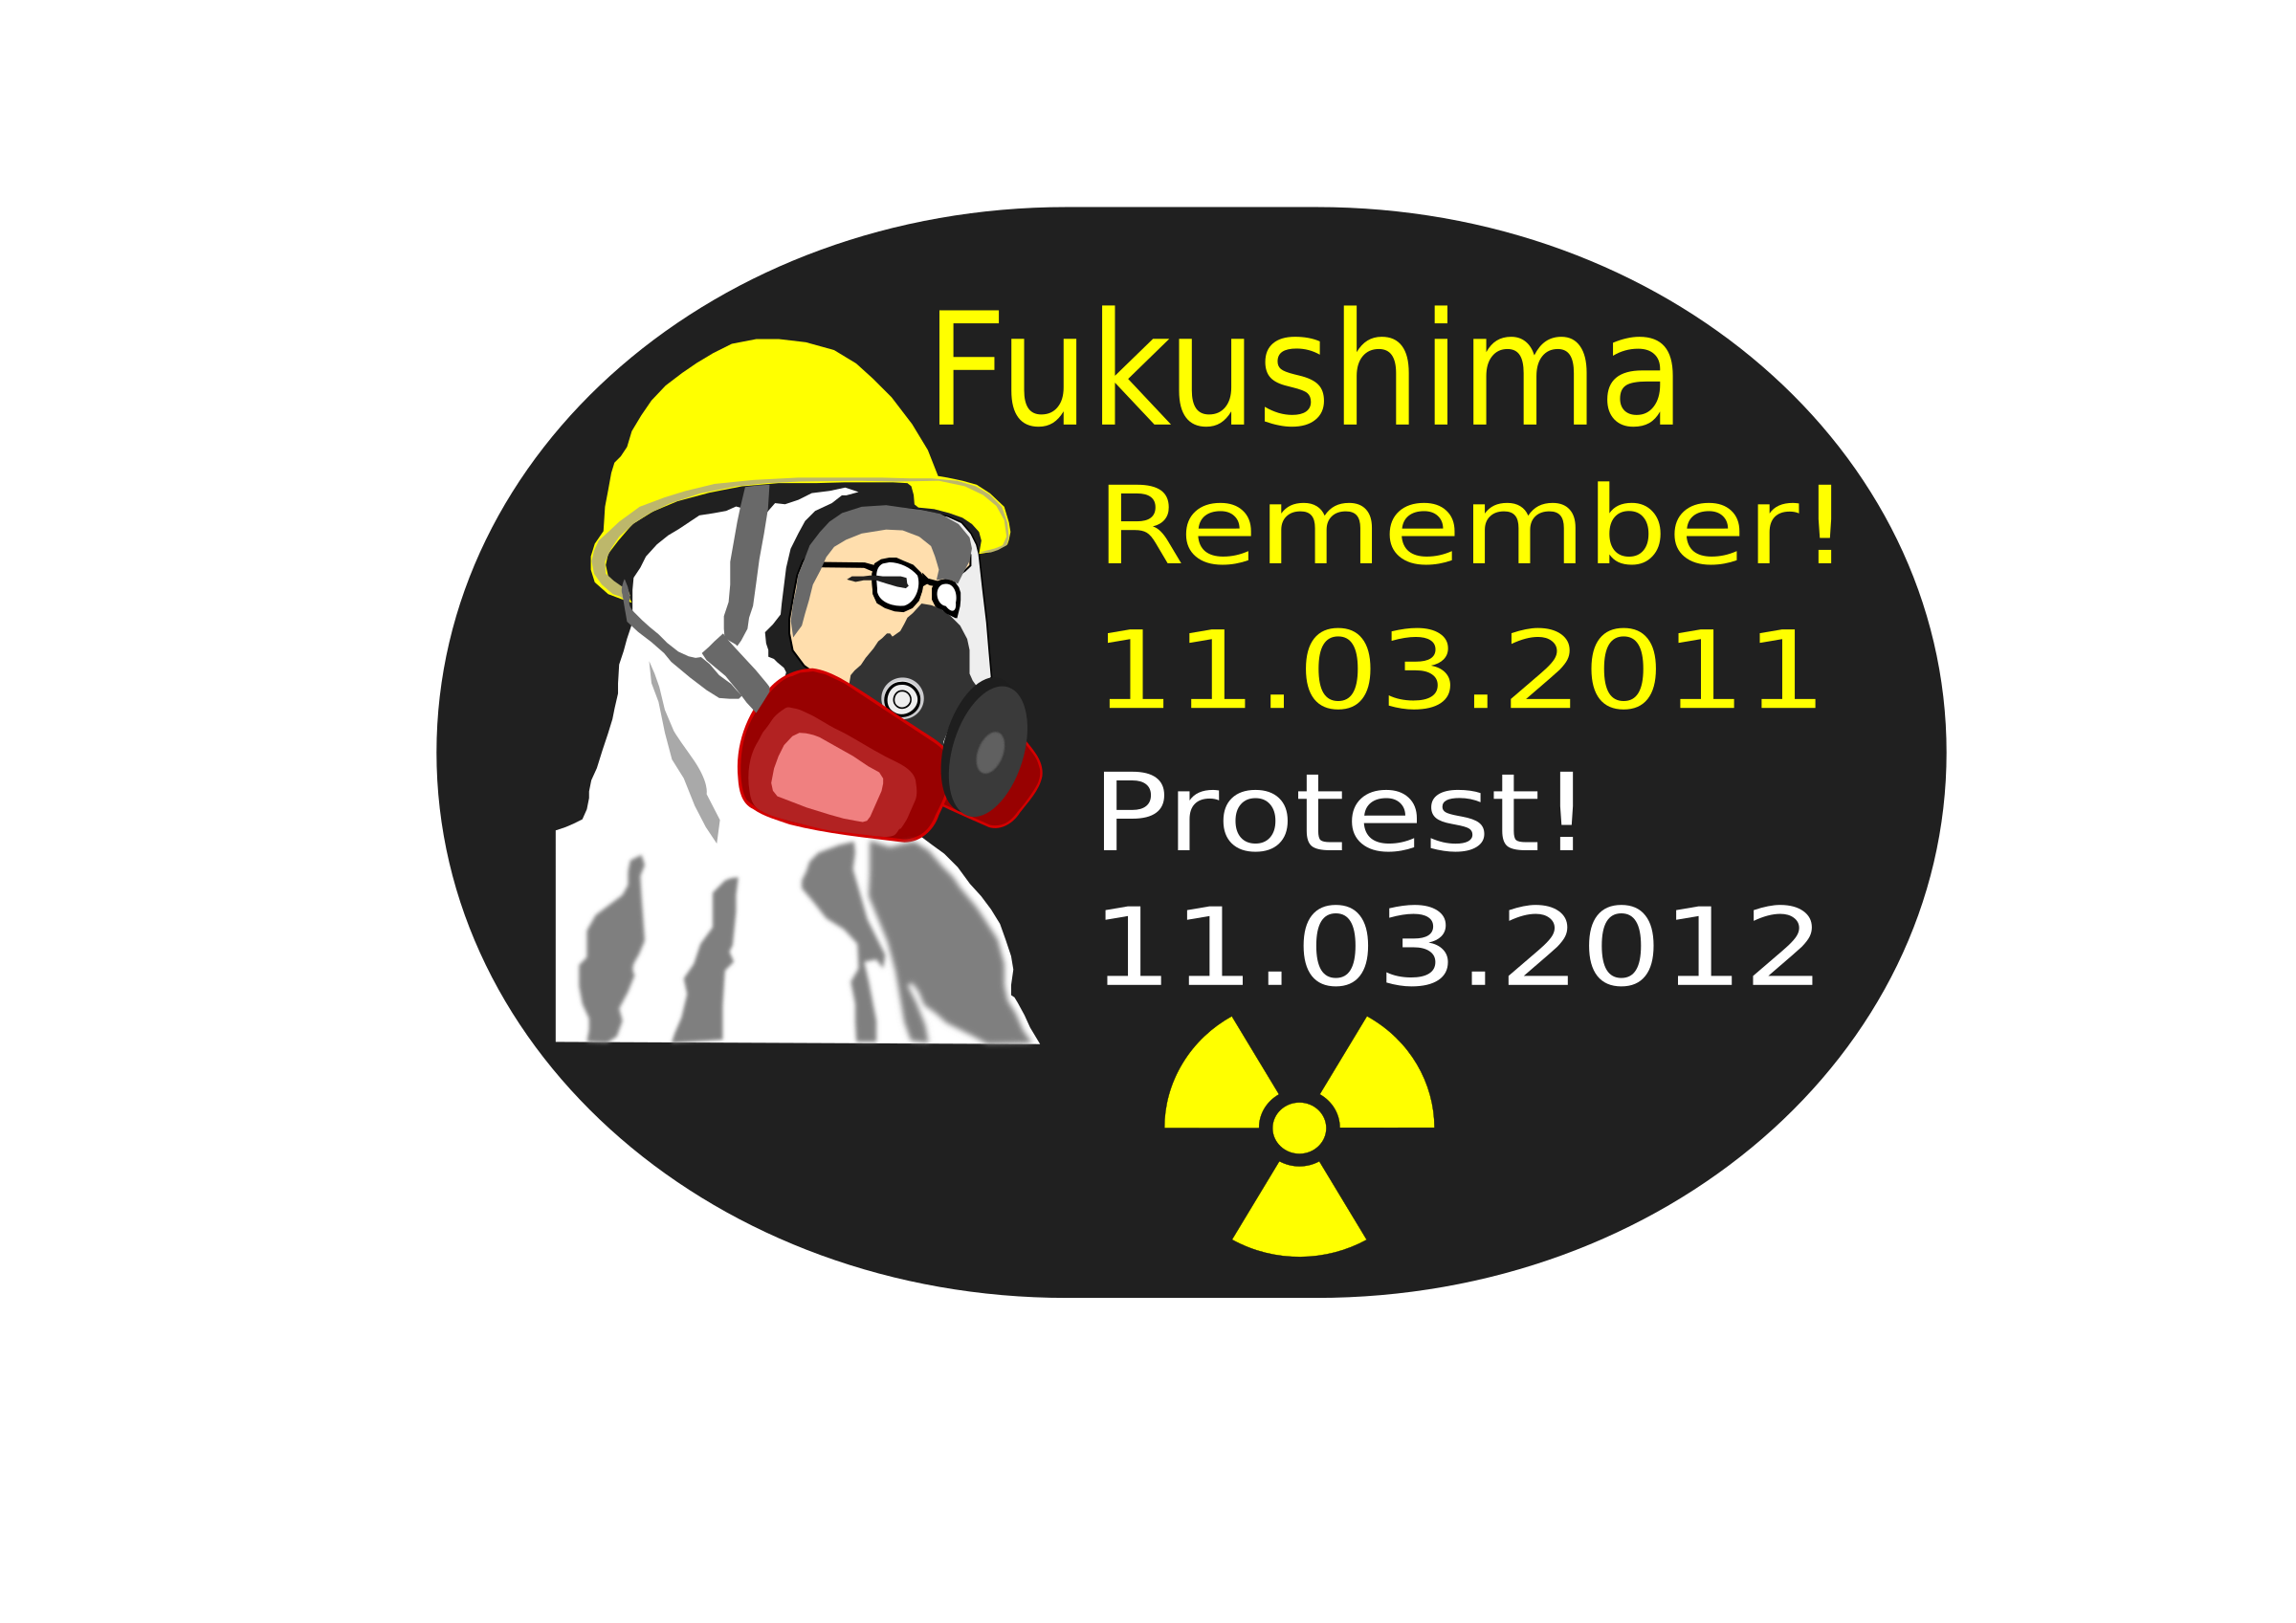 Fukushima Protest 2012 by lusp